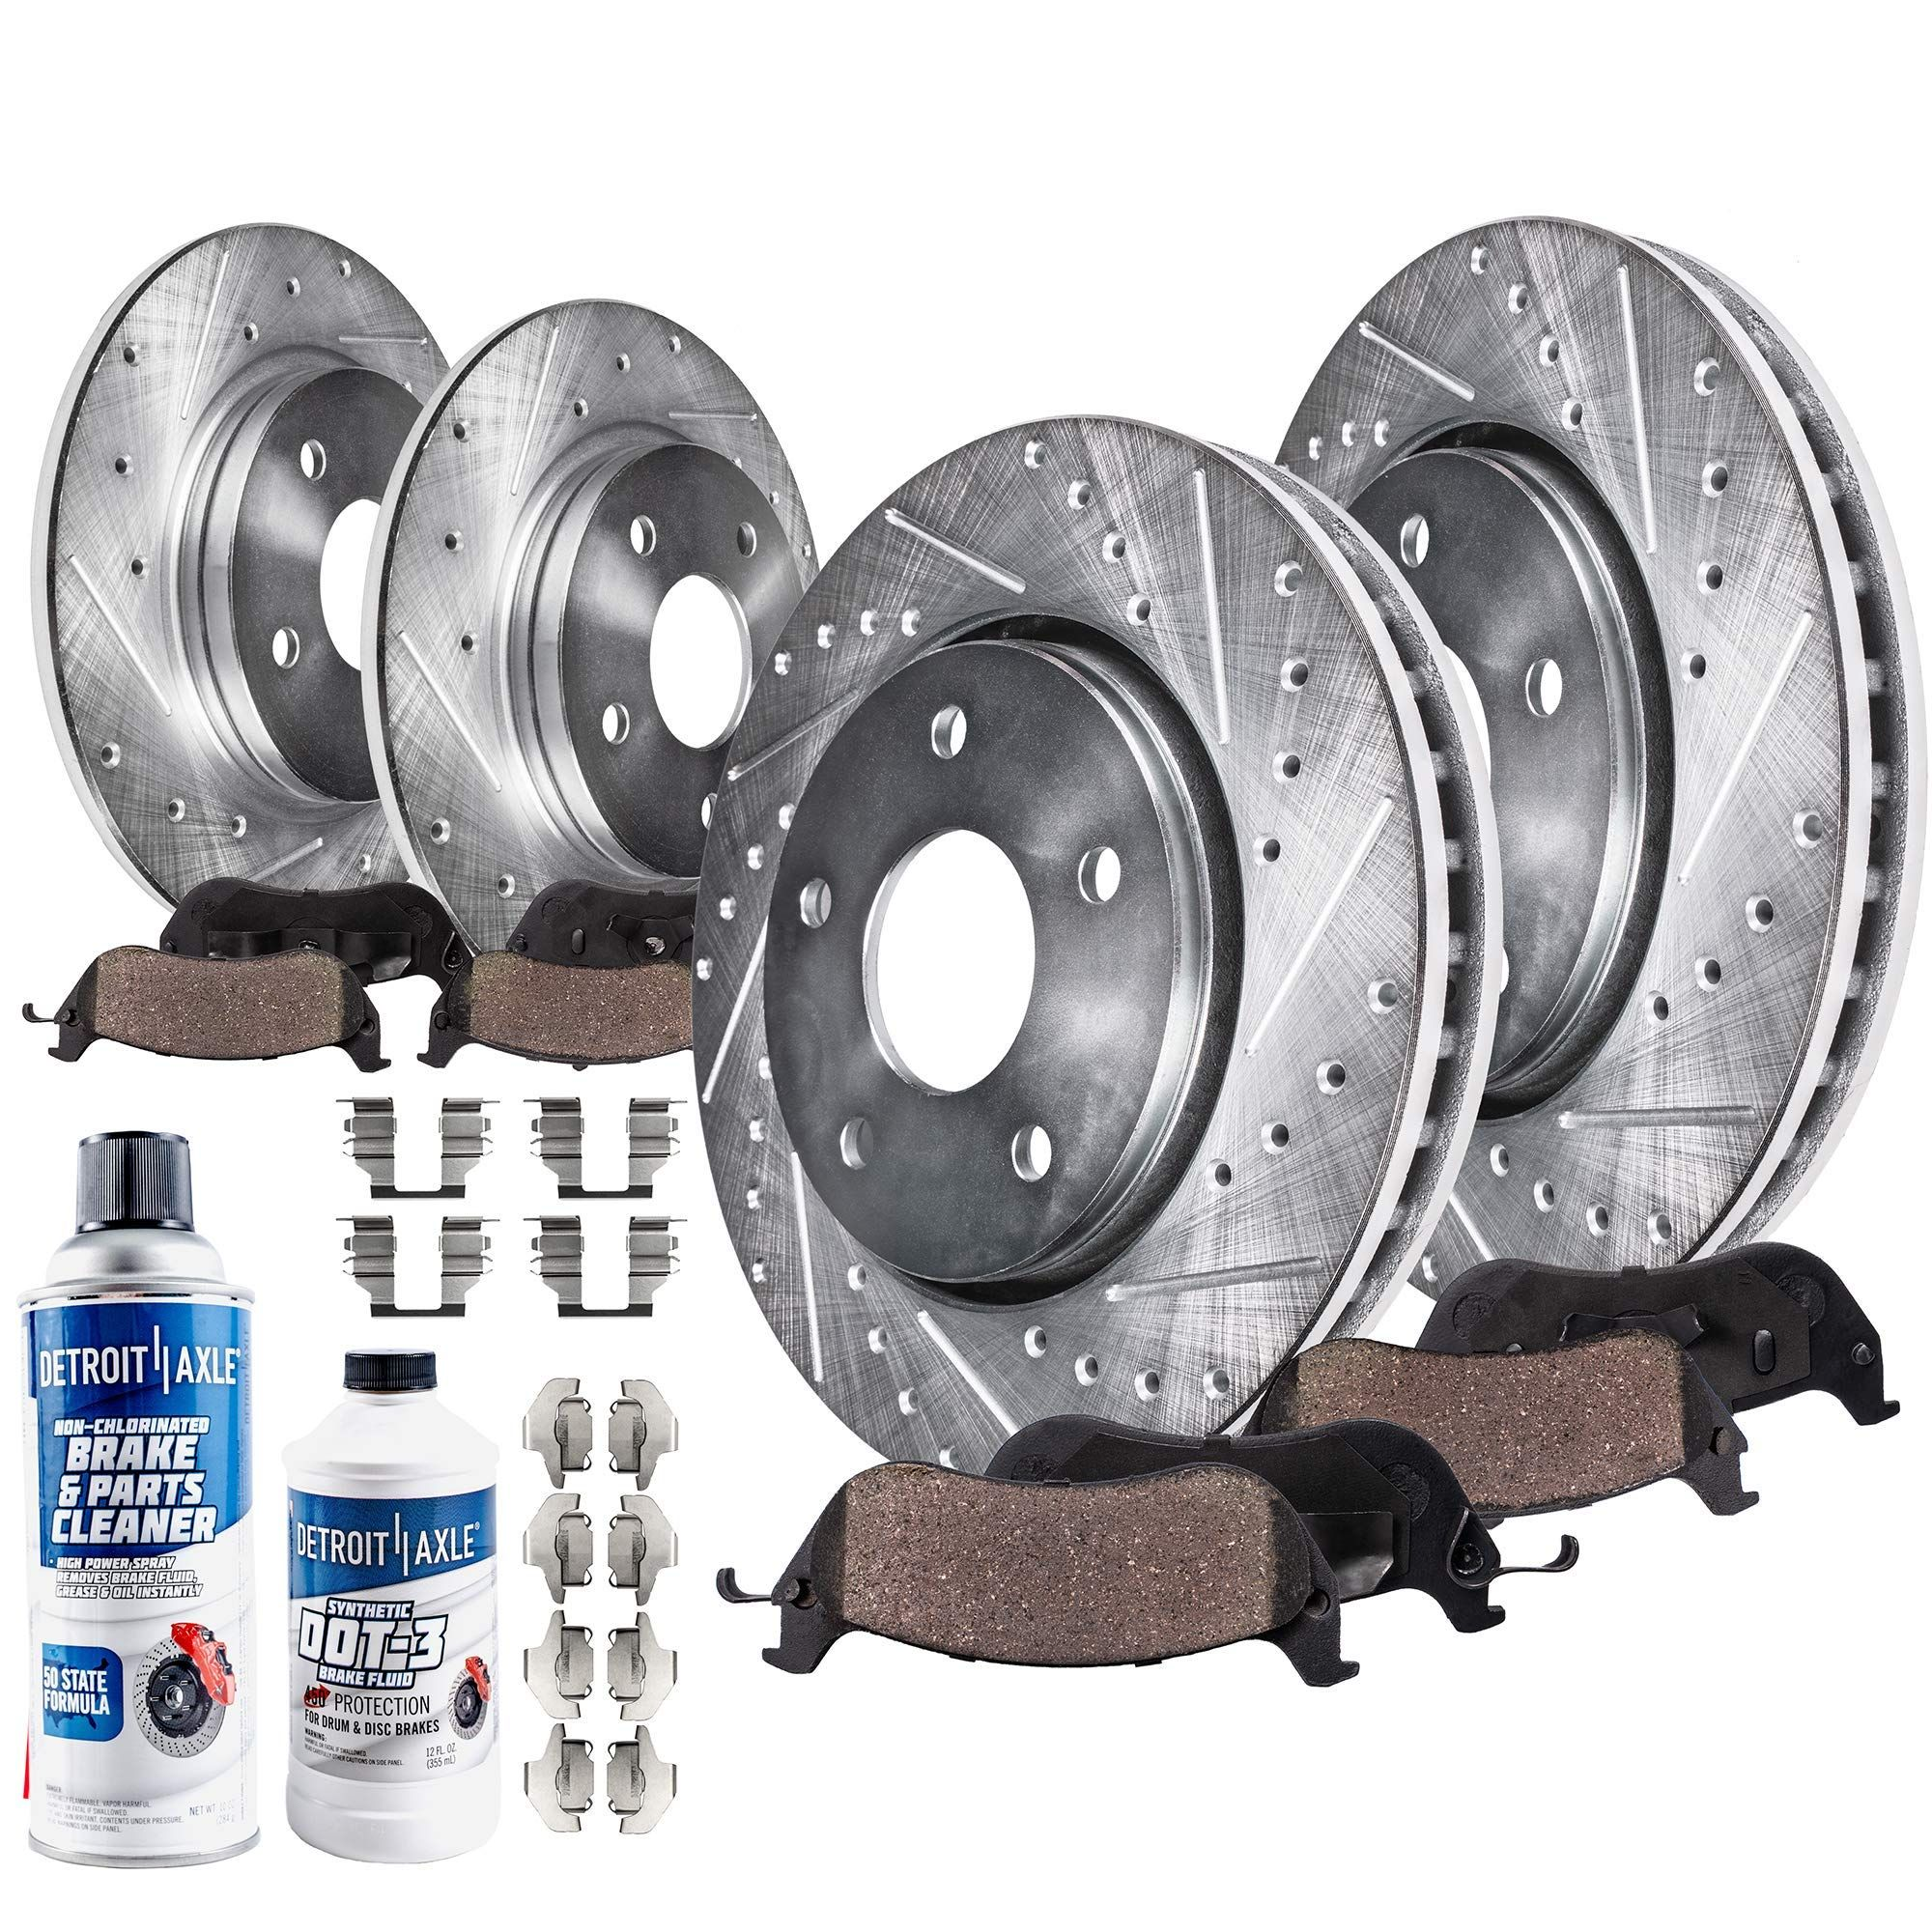 Detroit Axle 10pr1900346 Front And Rear Drilled Slotted Brake Rotors Check Out This Great Product Affilia Ceramic Brake Pads Ceramic Brakes Brakes And Rotors